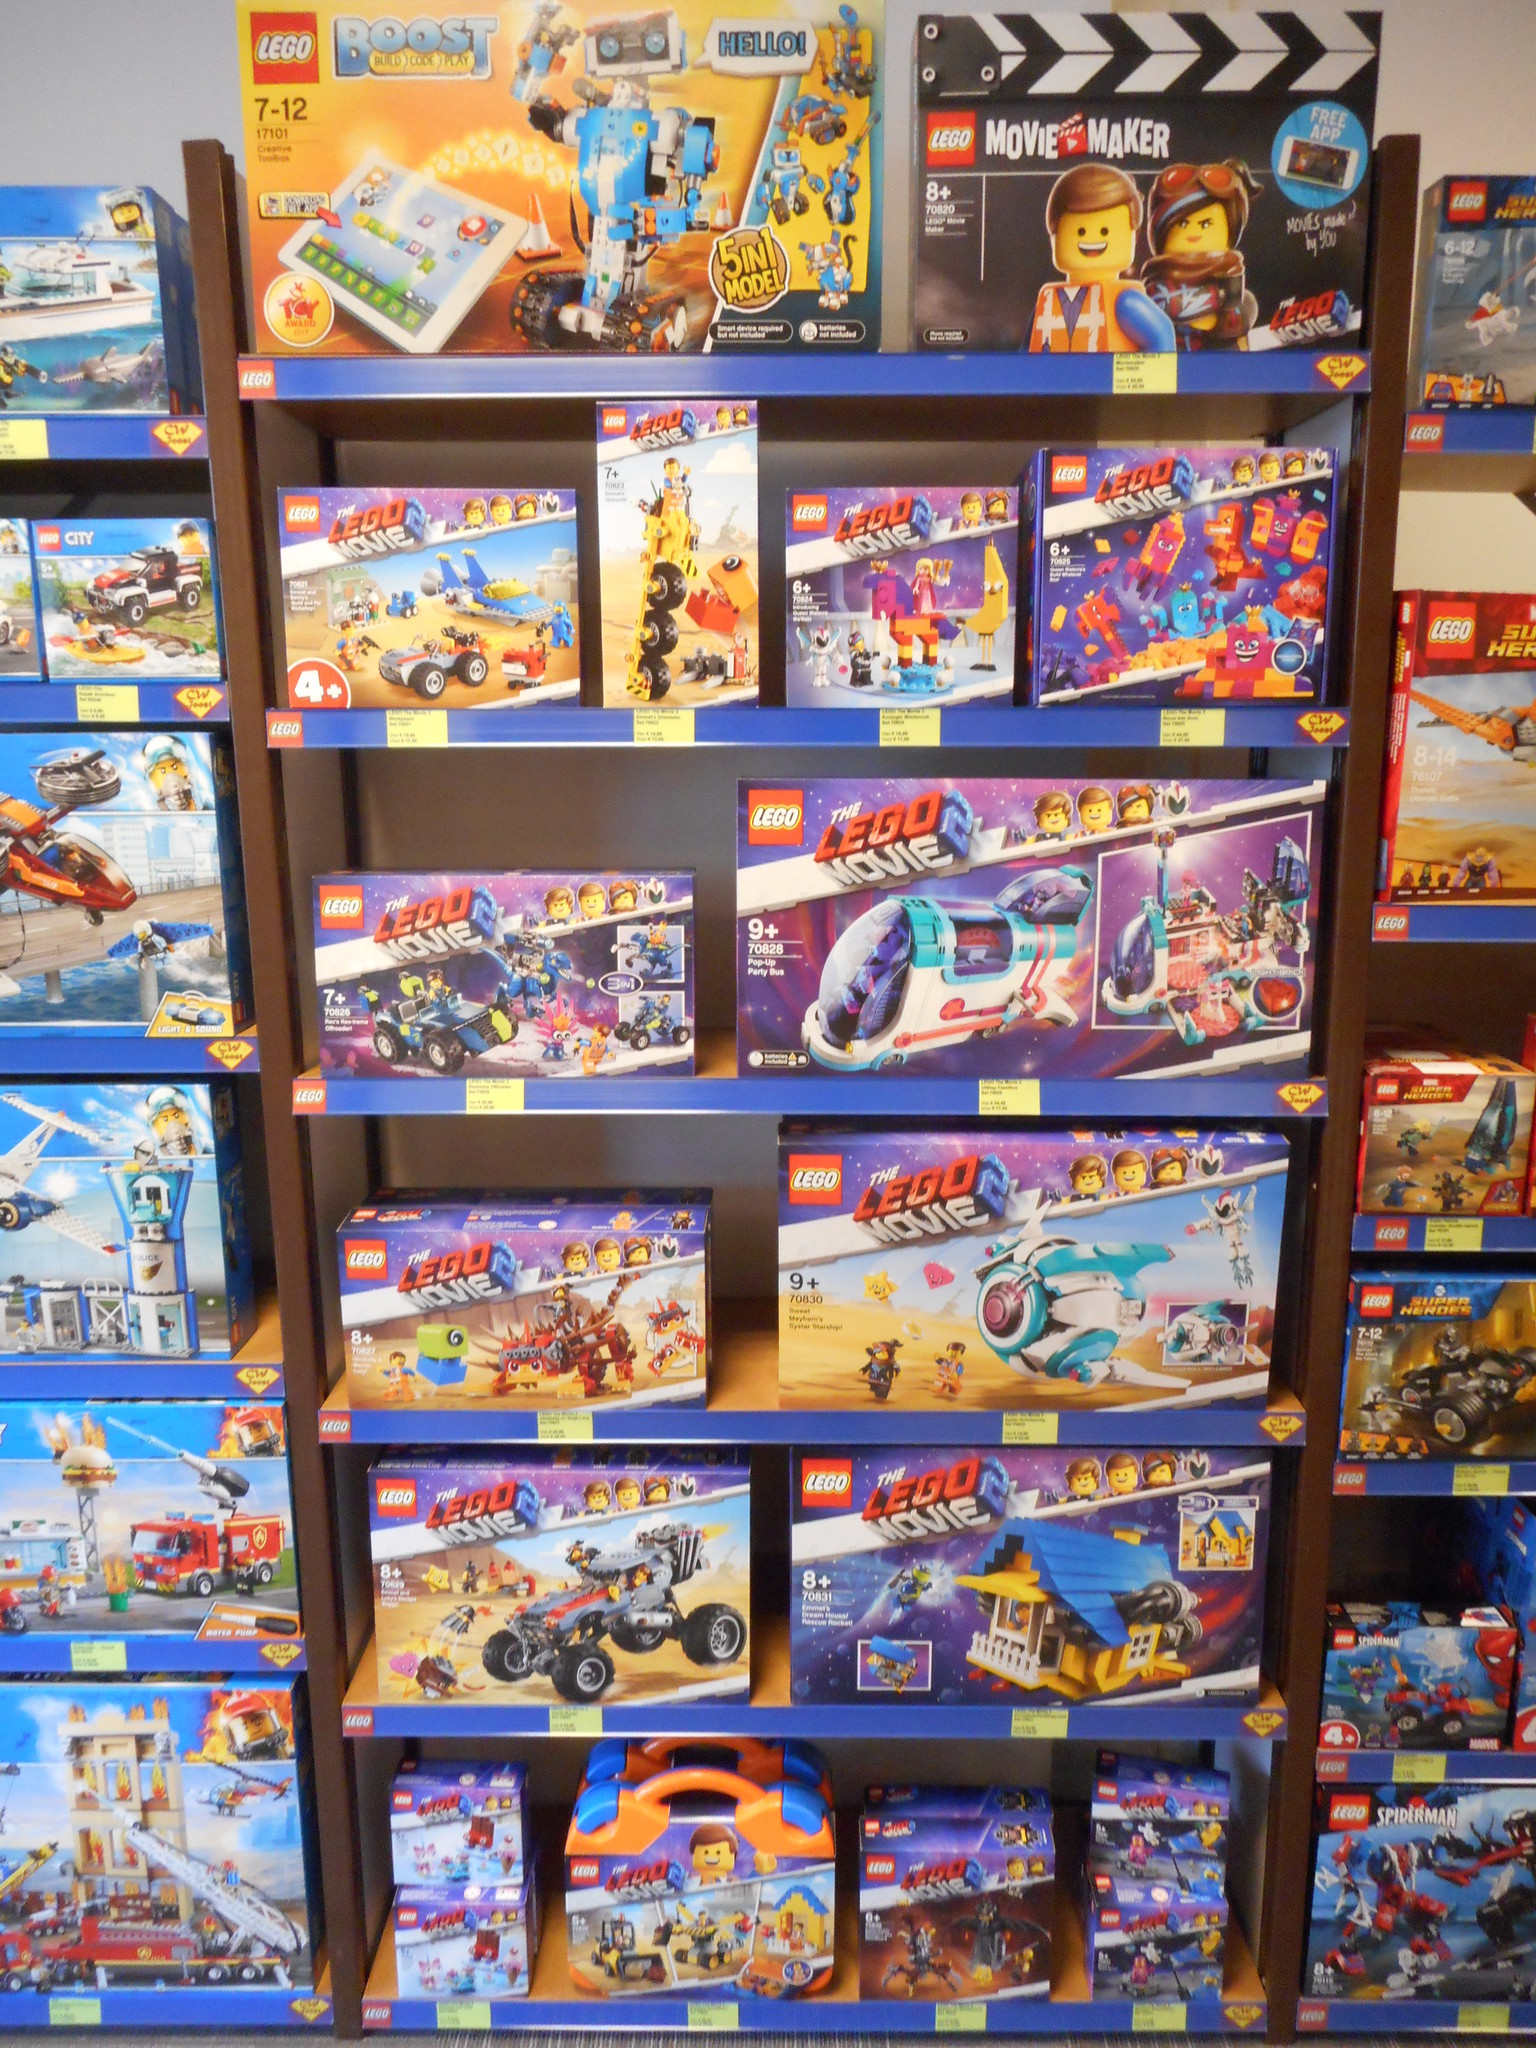 LEGO The Movie 2 sets